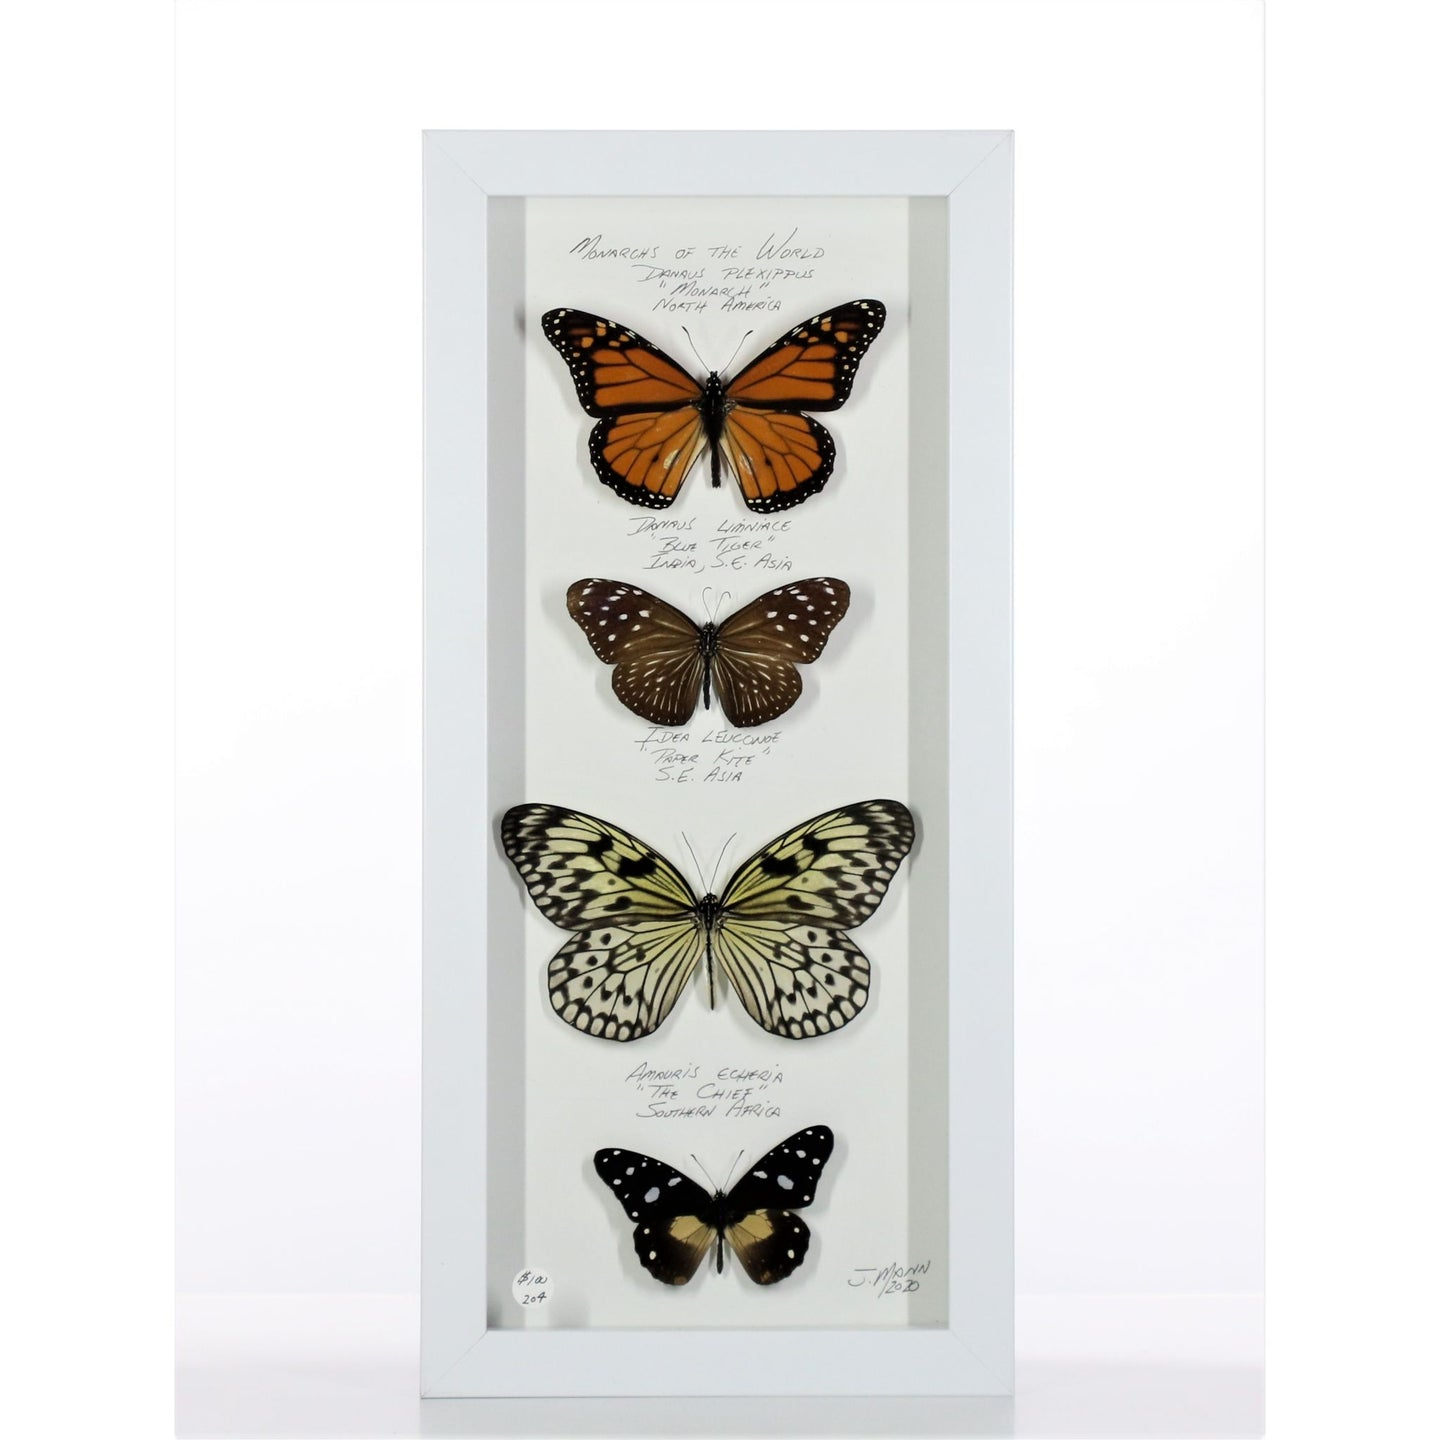 Four Monarchs of the World 6x14 White #204 Framed Art - Insecta Etcetera